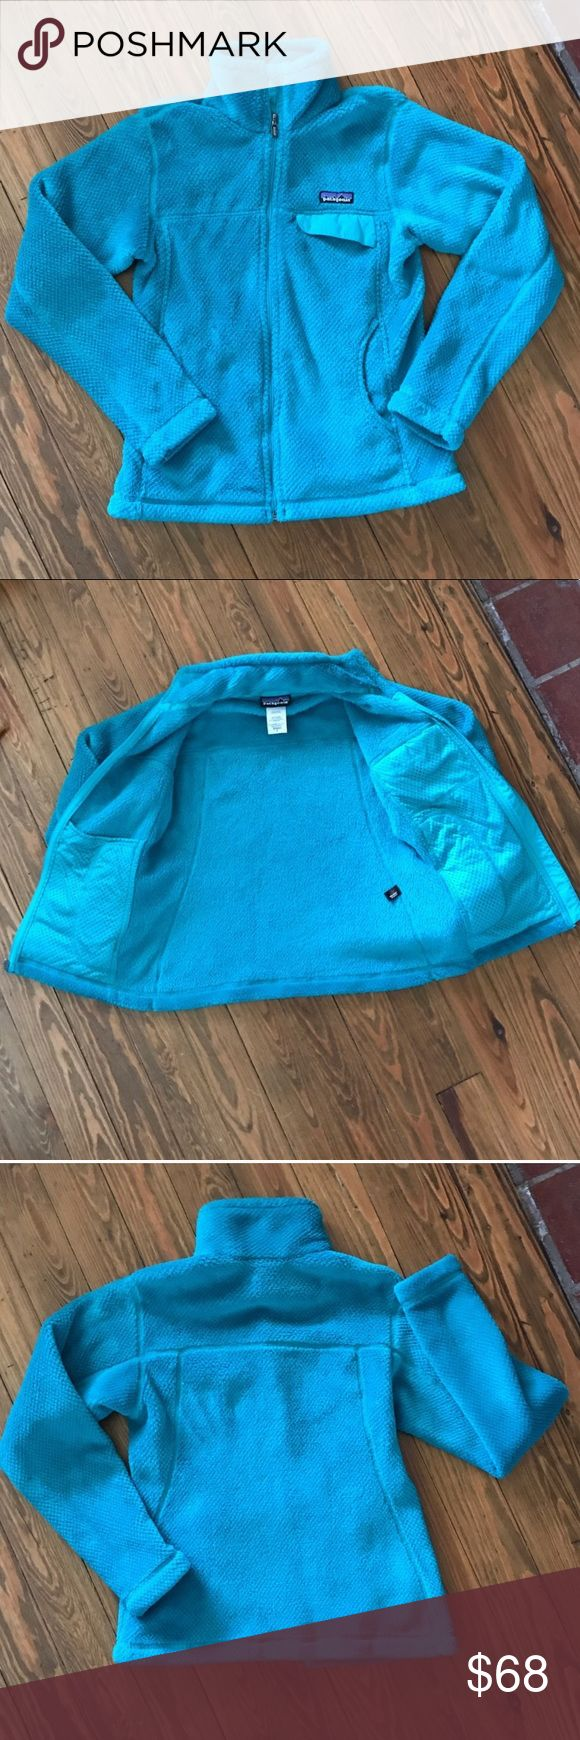 Patagonia fleece jacket Women's Small w/Polartec Excellent condition! Worn less than a handful of times. I will consider reasonable offers. I video and photo all sales to protect us both.  Patagonia Jackets & Coats